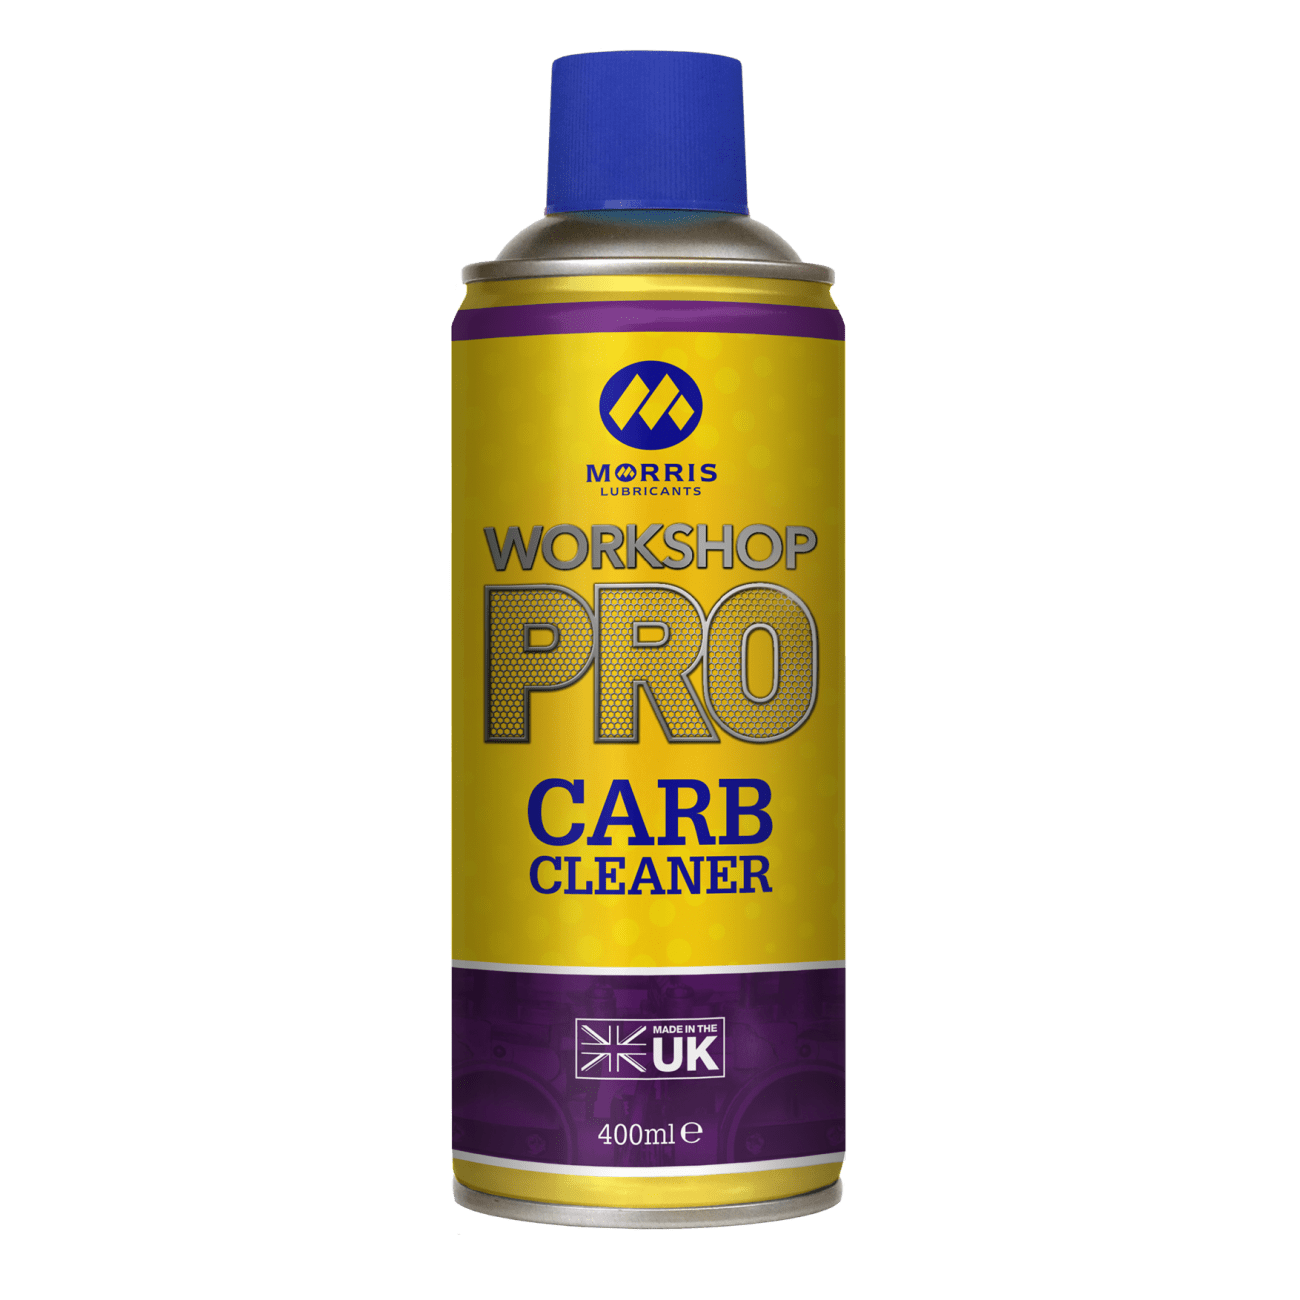 Workshop Pro Carb Cleaner